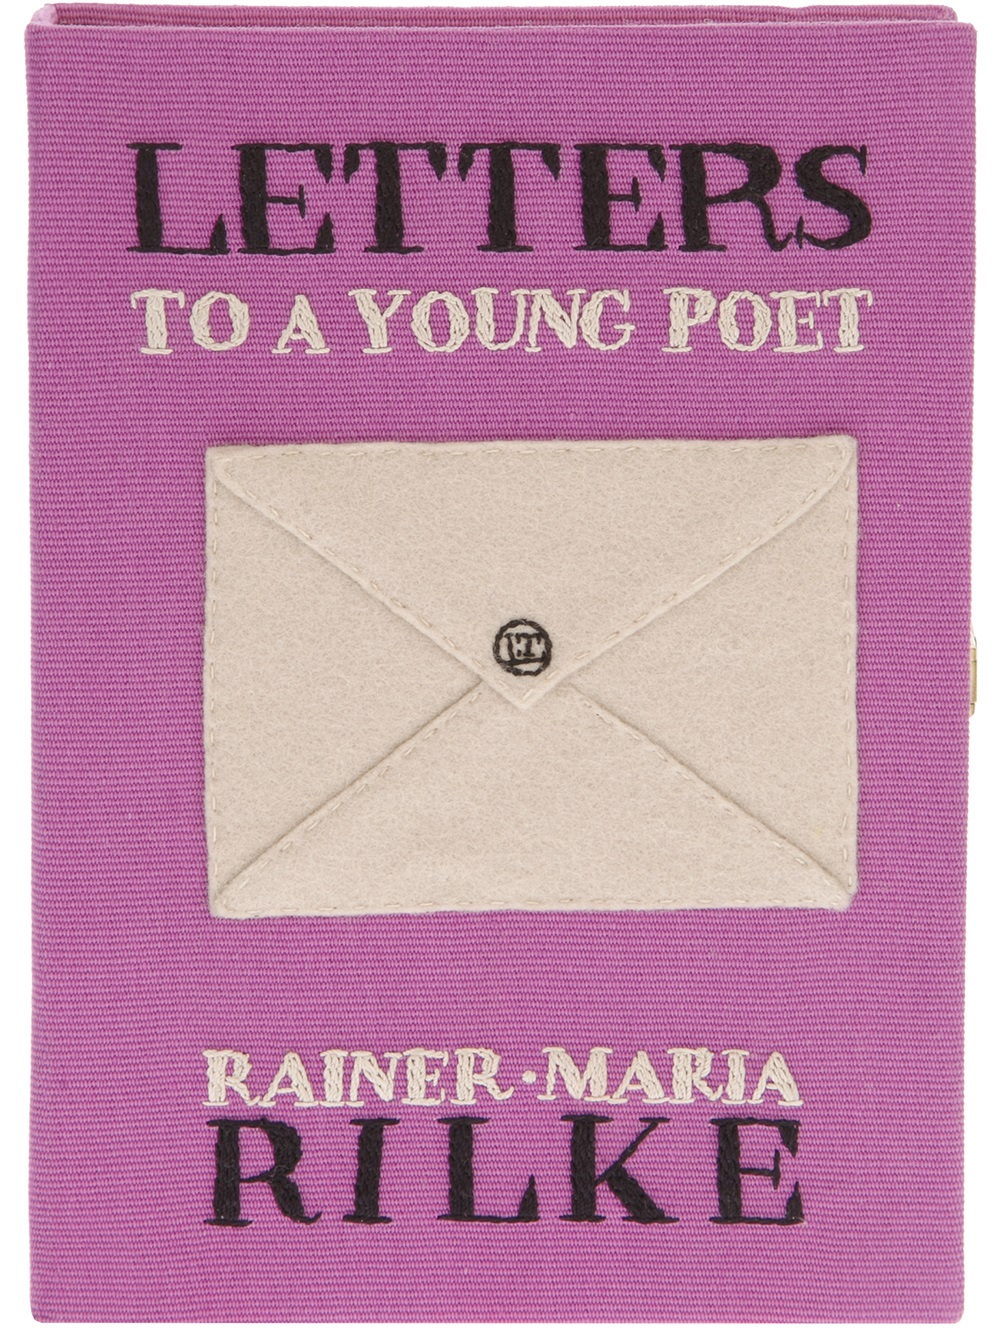 Lyst Olympia le tan Letters To A Young Poet Clutch in Purple